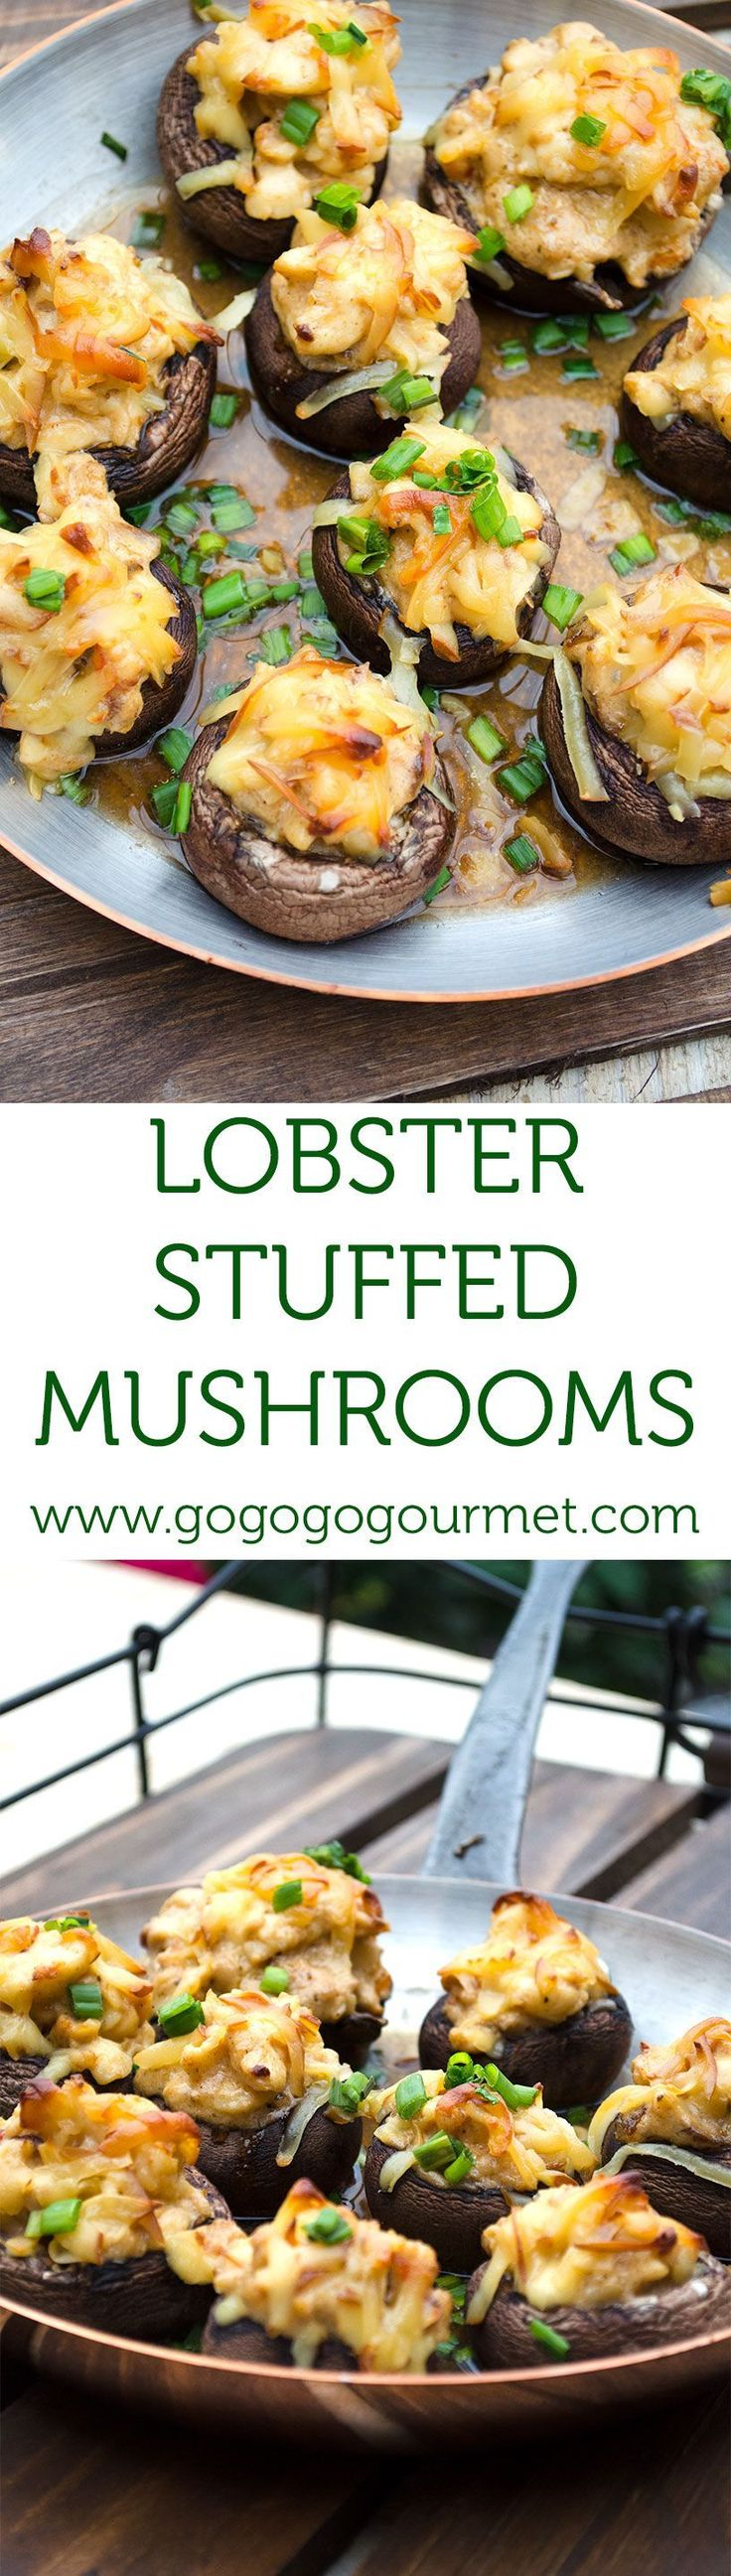 Chunks of buttery lobster and smoked gouda stuffed inside mushrooms...heaven on earth:) #seafoodrecipes